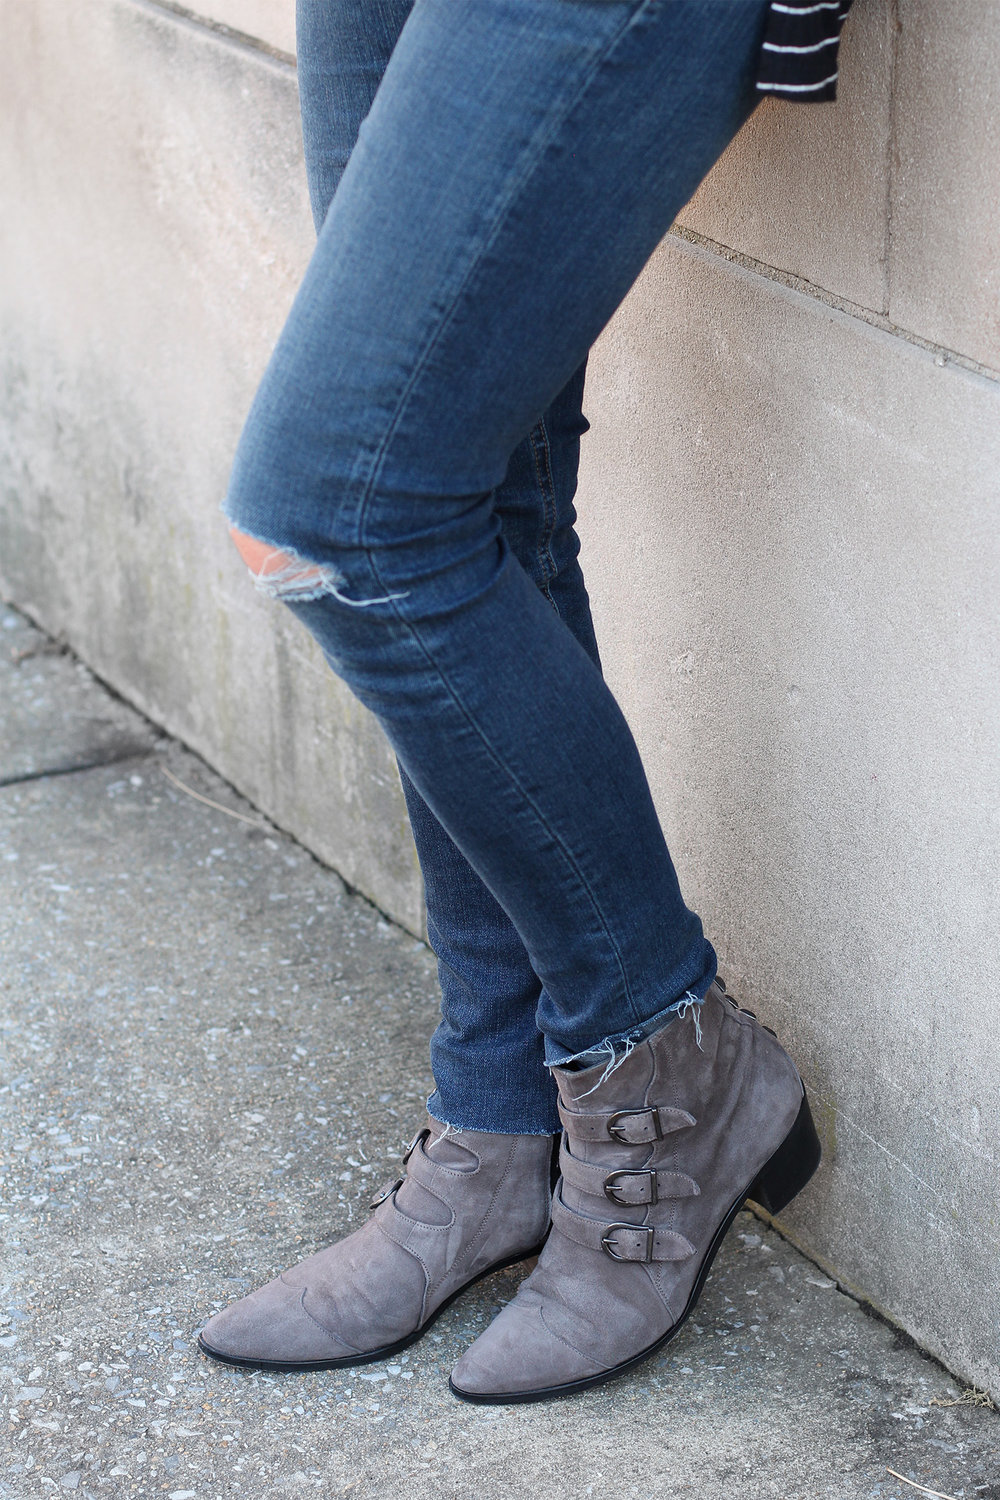 AG Jeans, Distressed Jeans, Ankle Boots Outfit